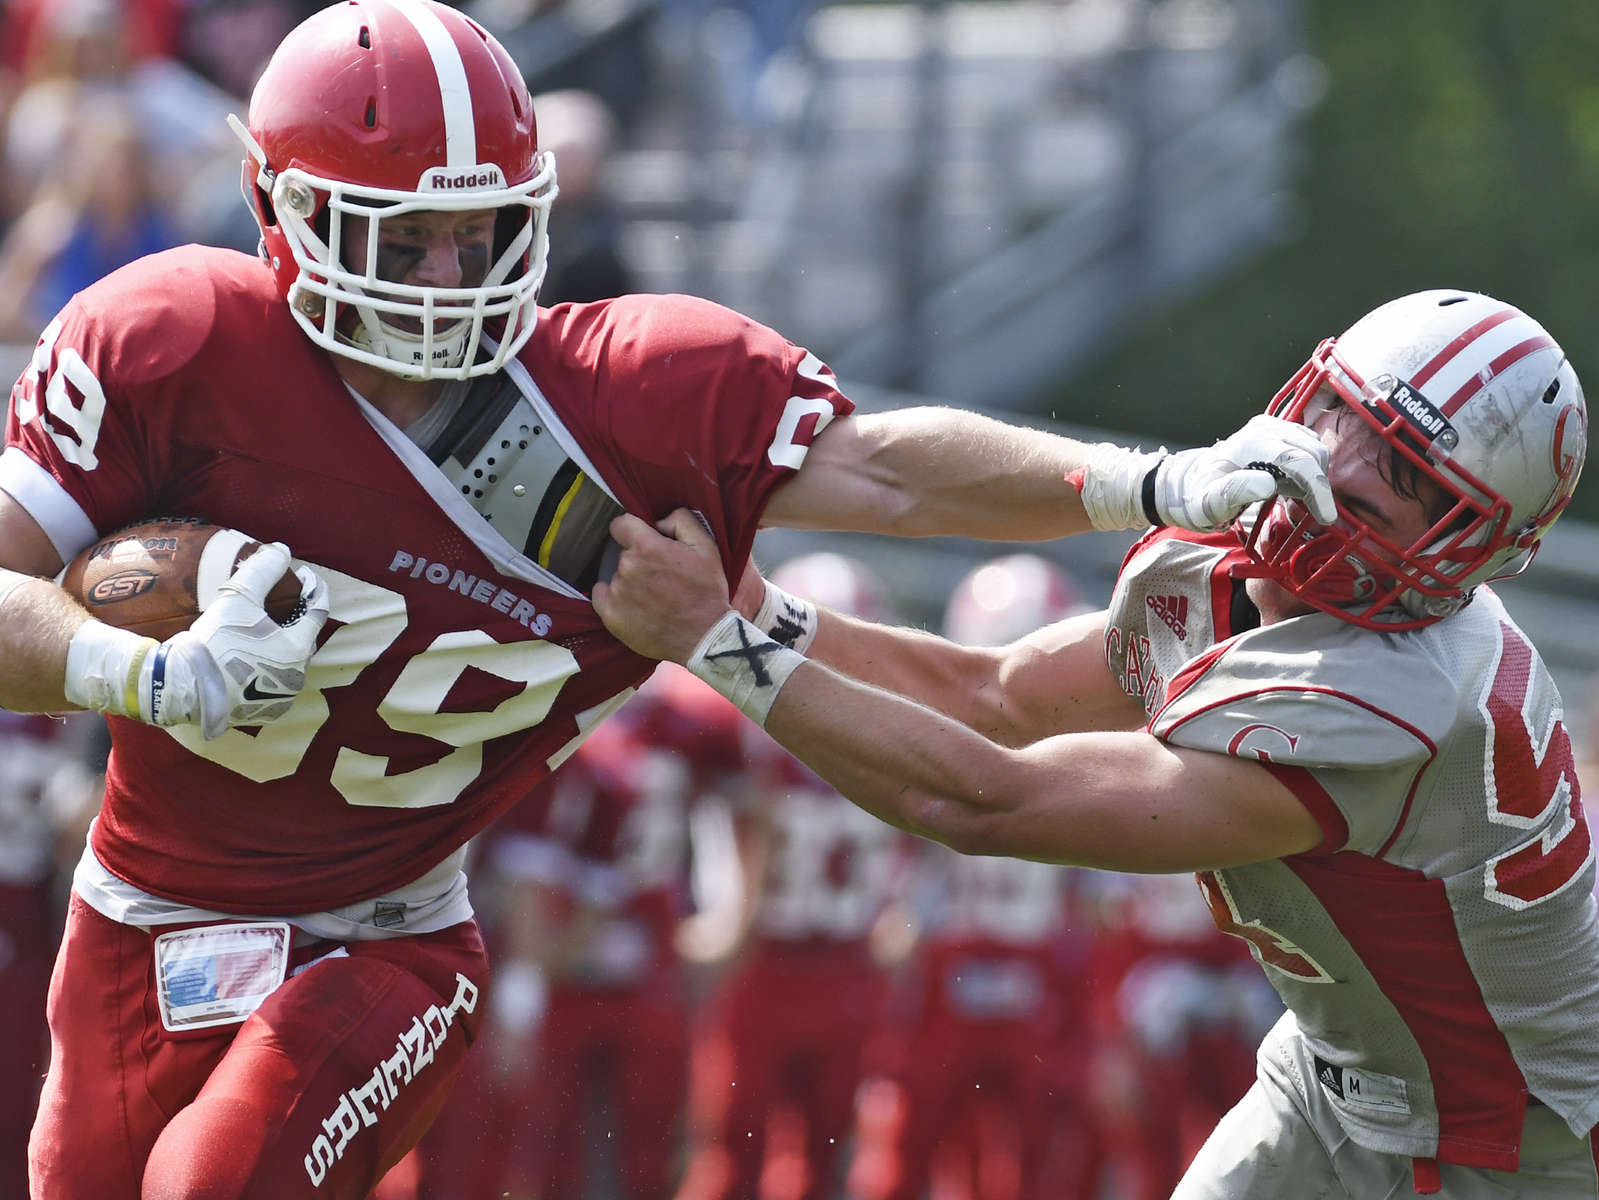 St. John's defensive end Tom Feraco stiff arms Catholic Memorial defensive lineman Matthew Rowan on Saturday, September 10, 2016.